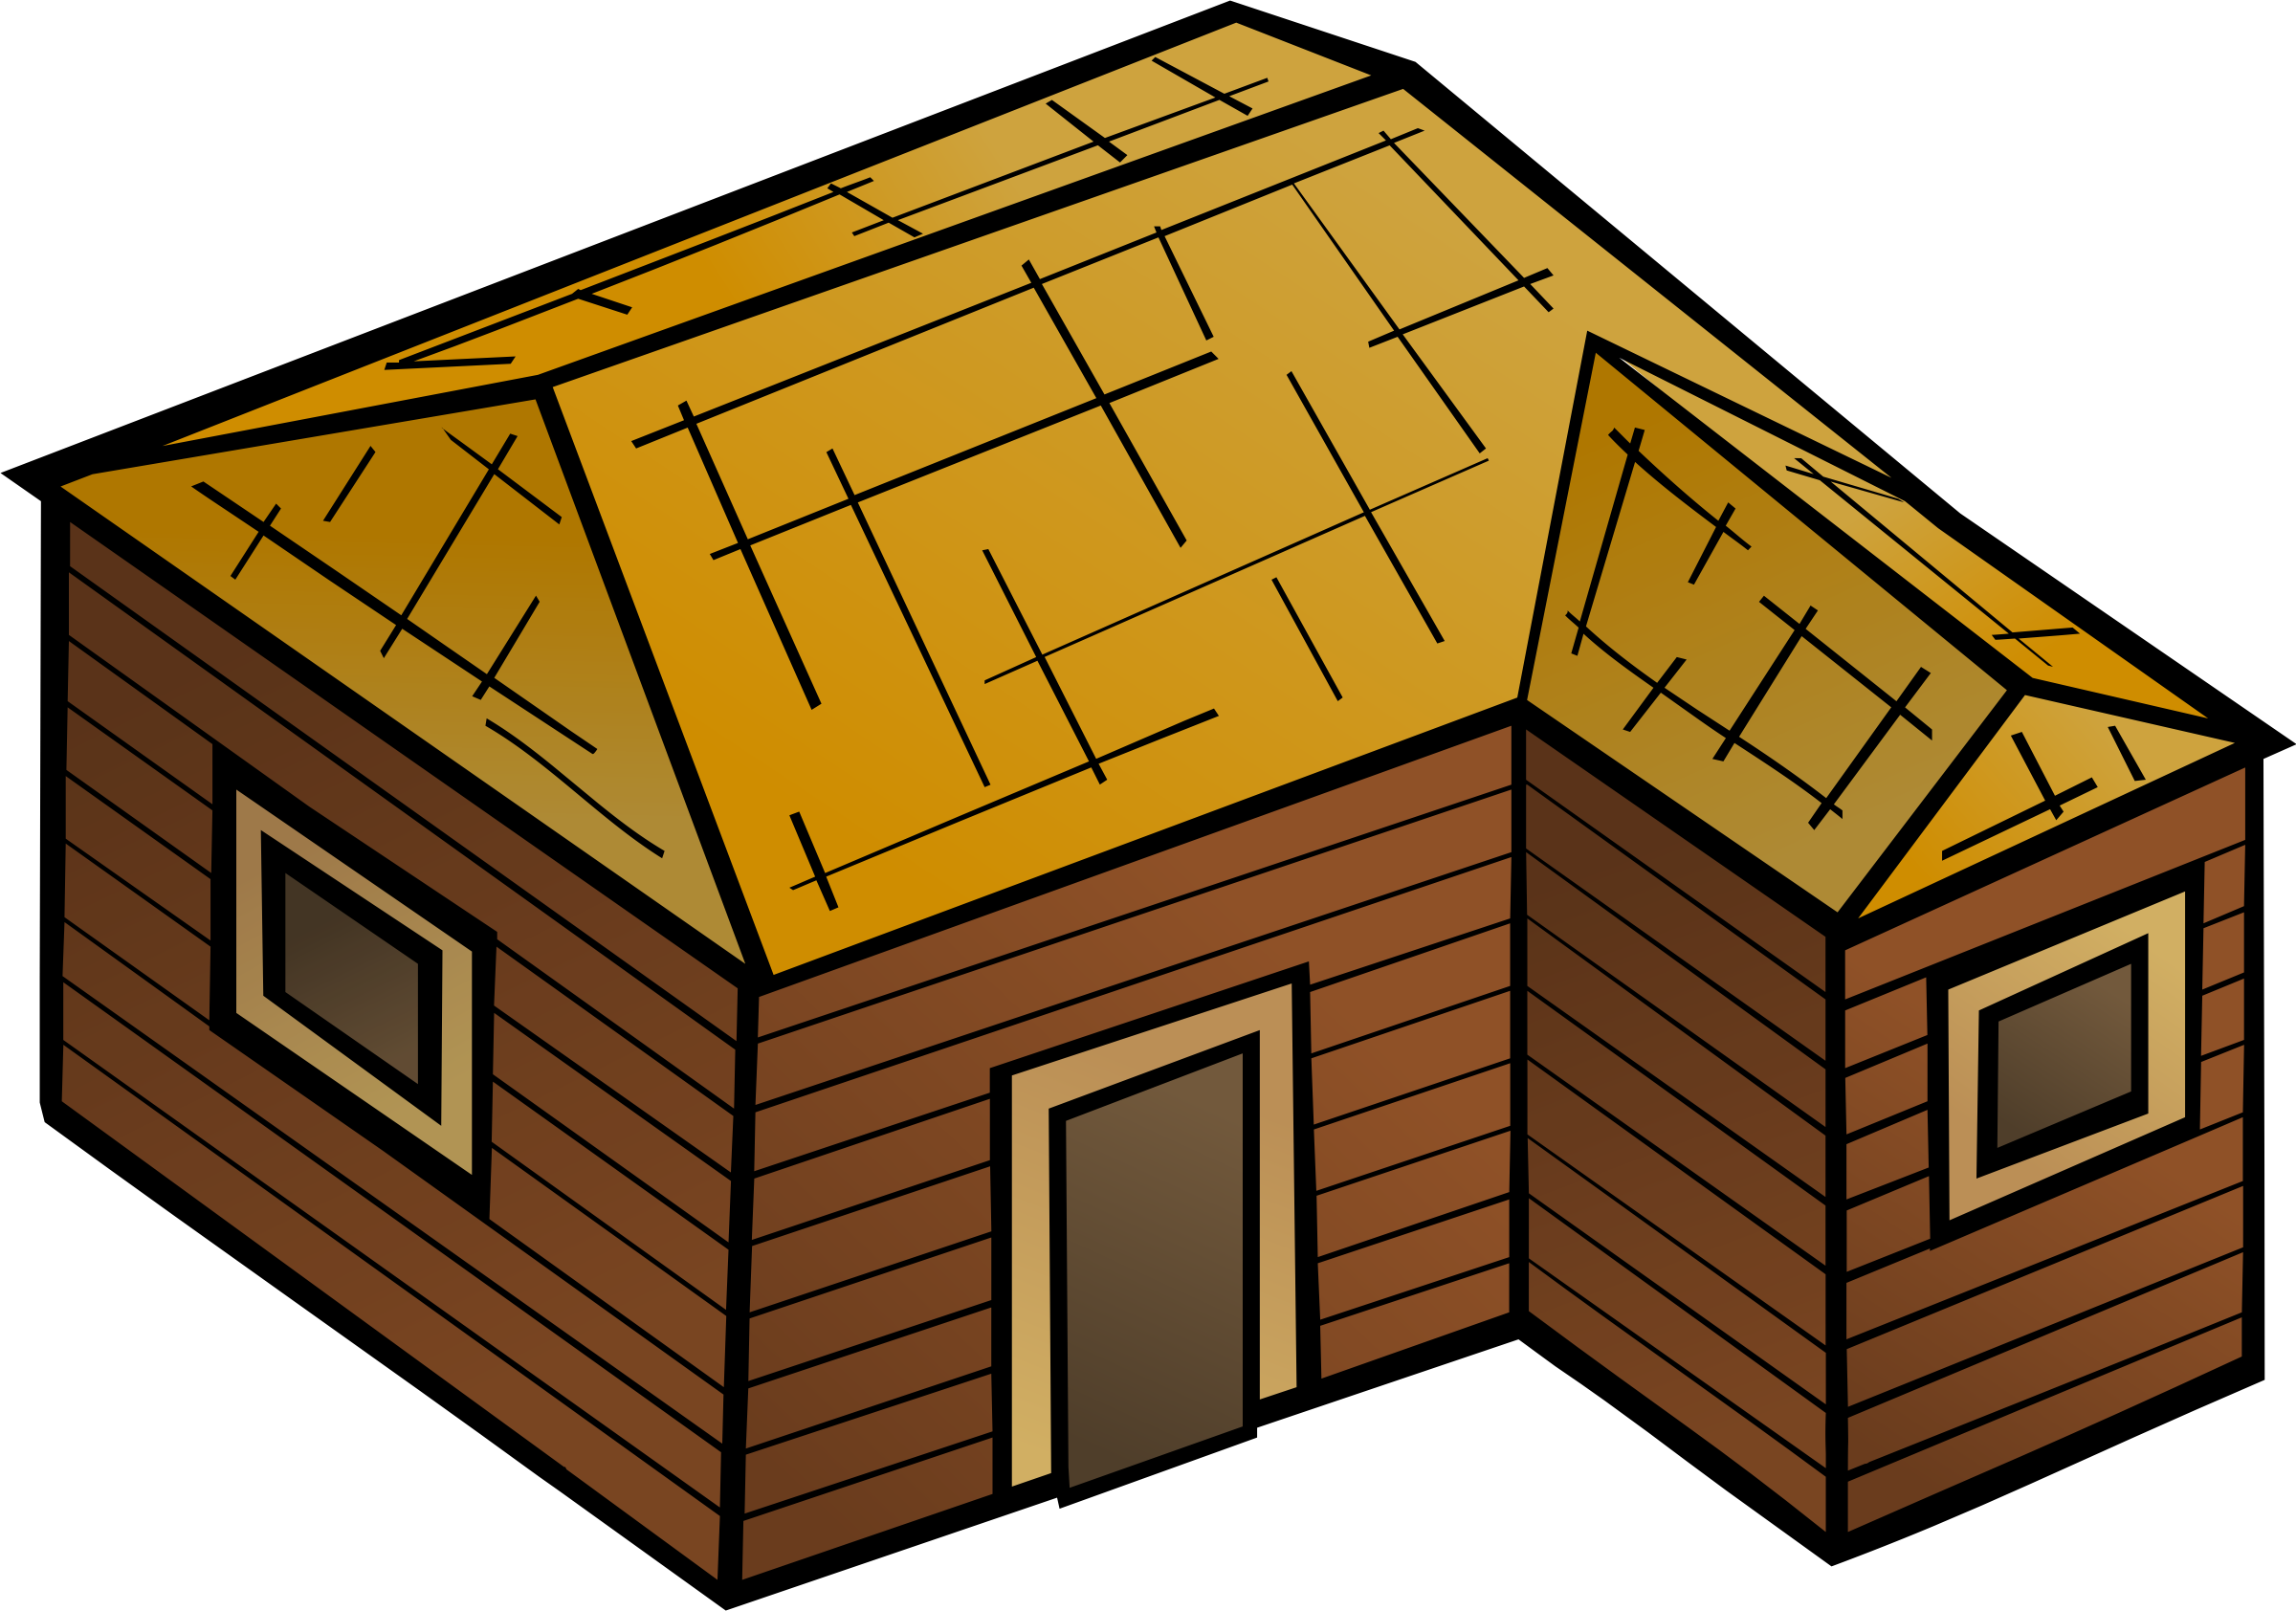 clipart wooden clip vector hut cabin domain transparent dwellings houses library svg shack cliparts clipartmag clipground log rights personal onlinelabels